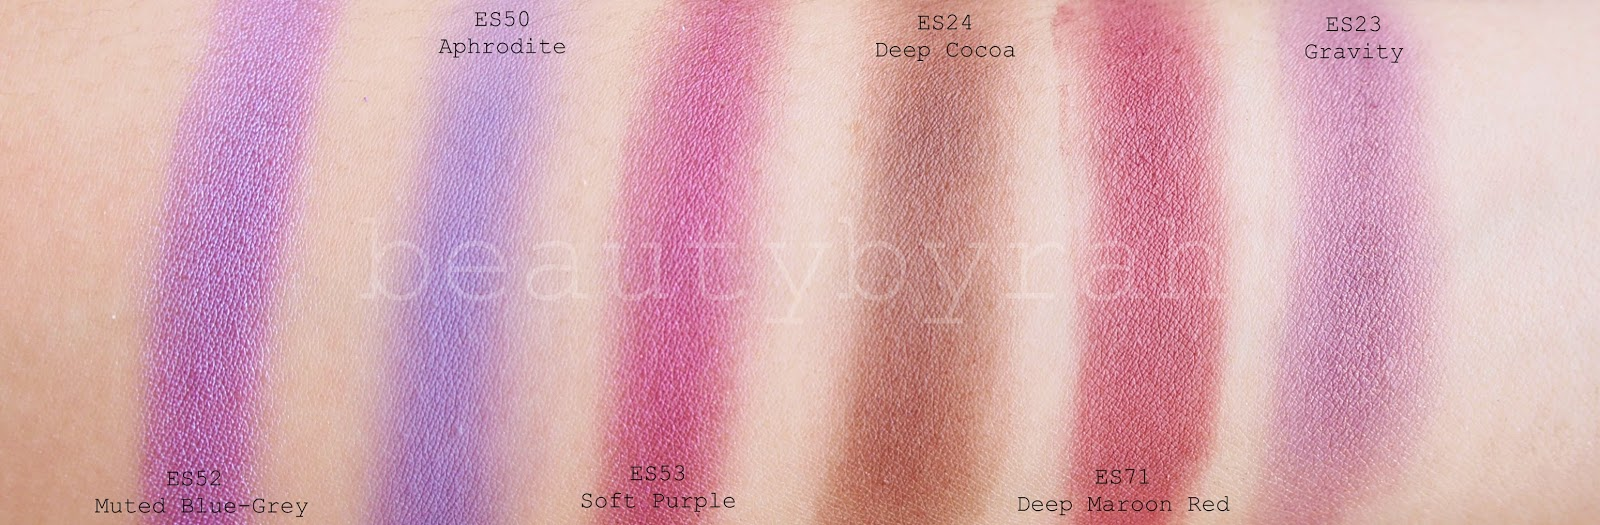 morphe brushes single eyeshadows review and swatches purples plums